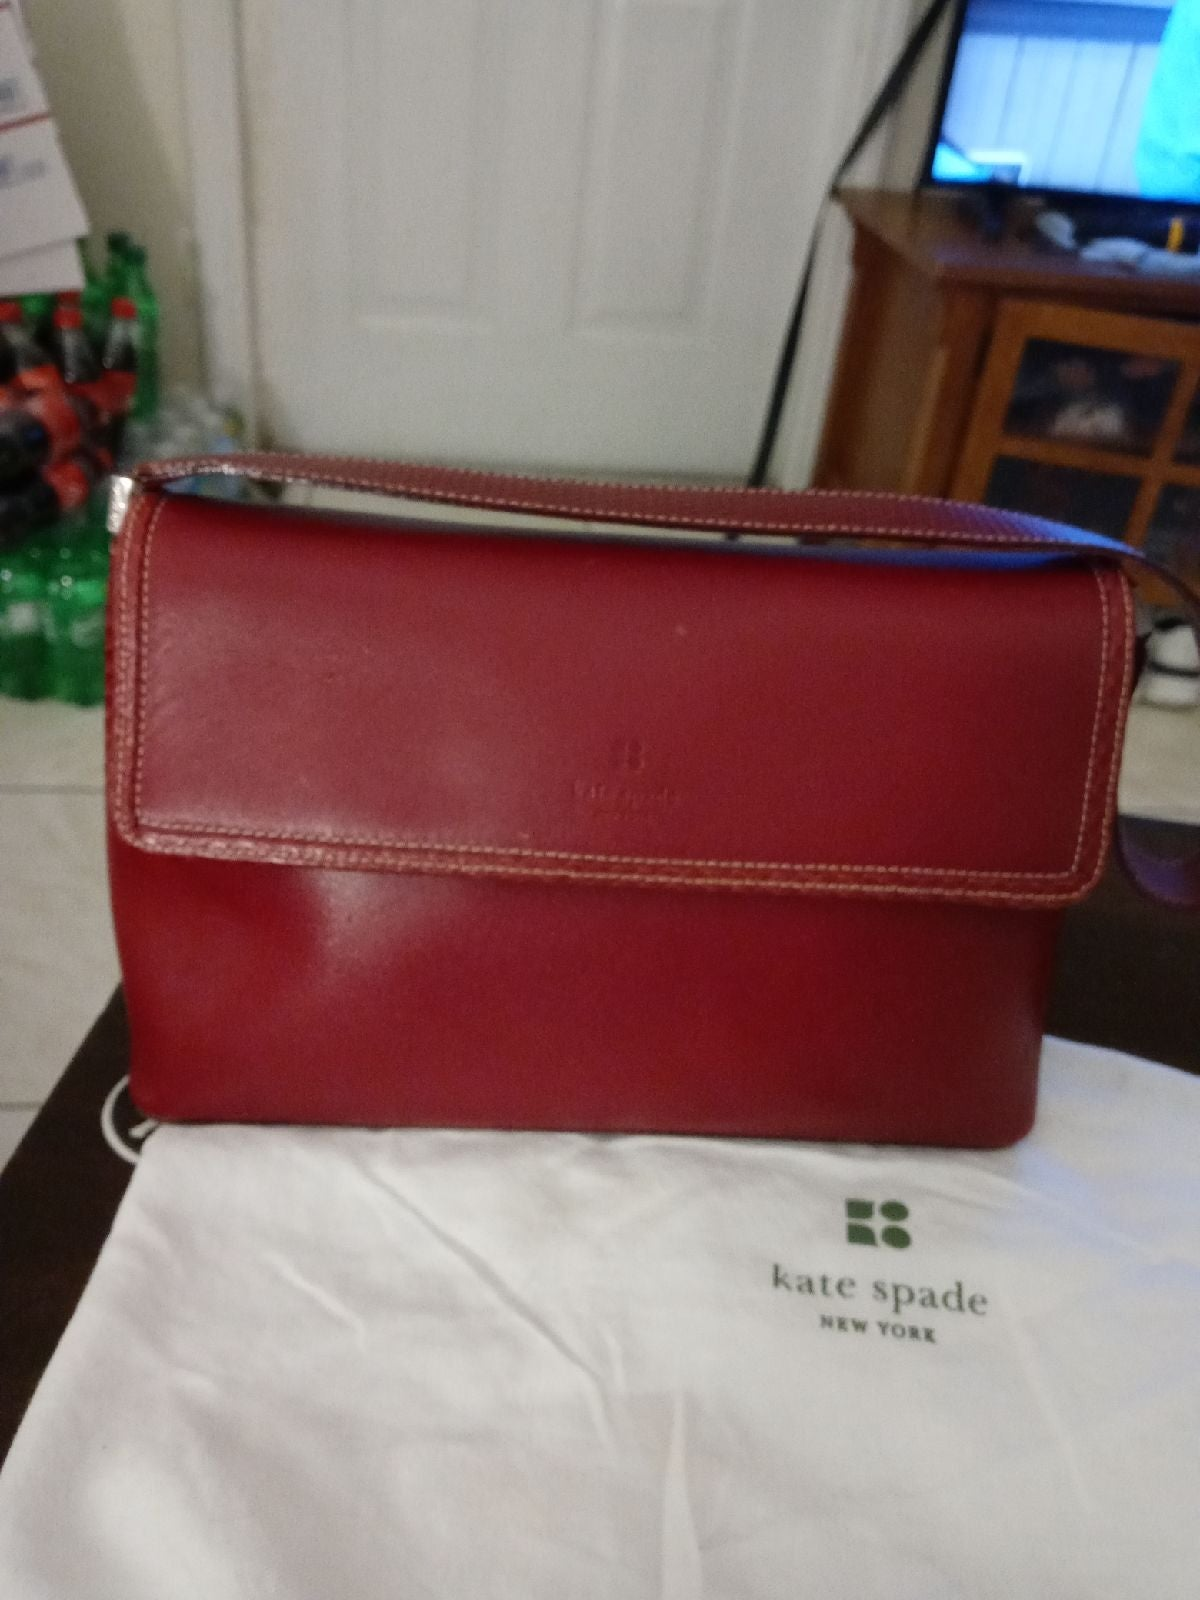 Kate Spade New York Red Leather Shoulder